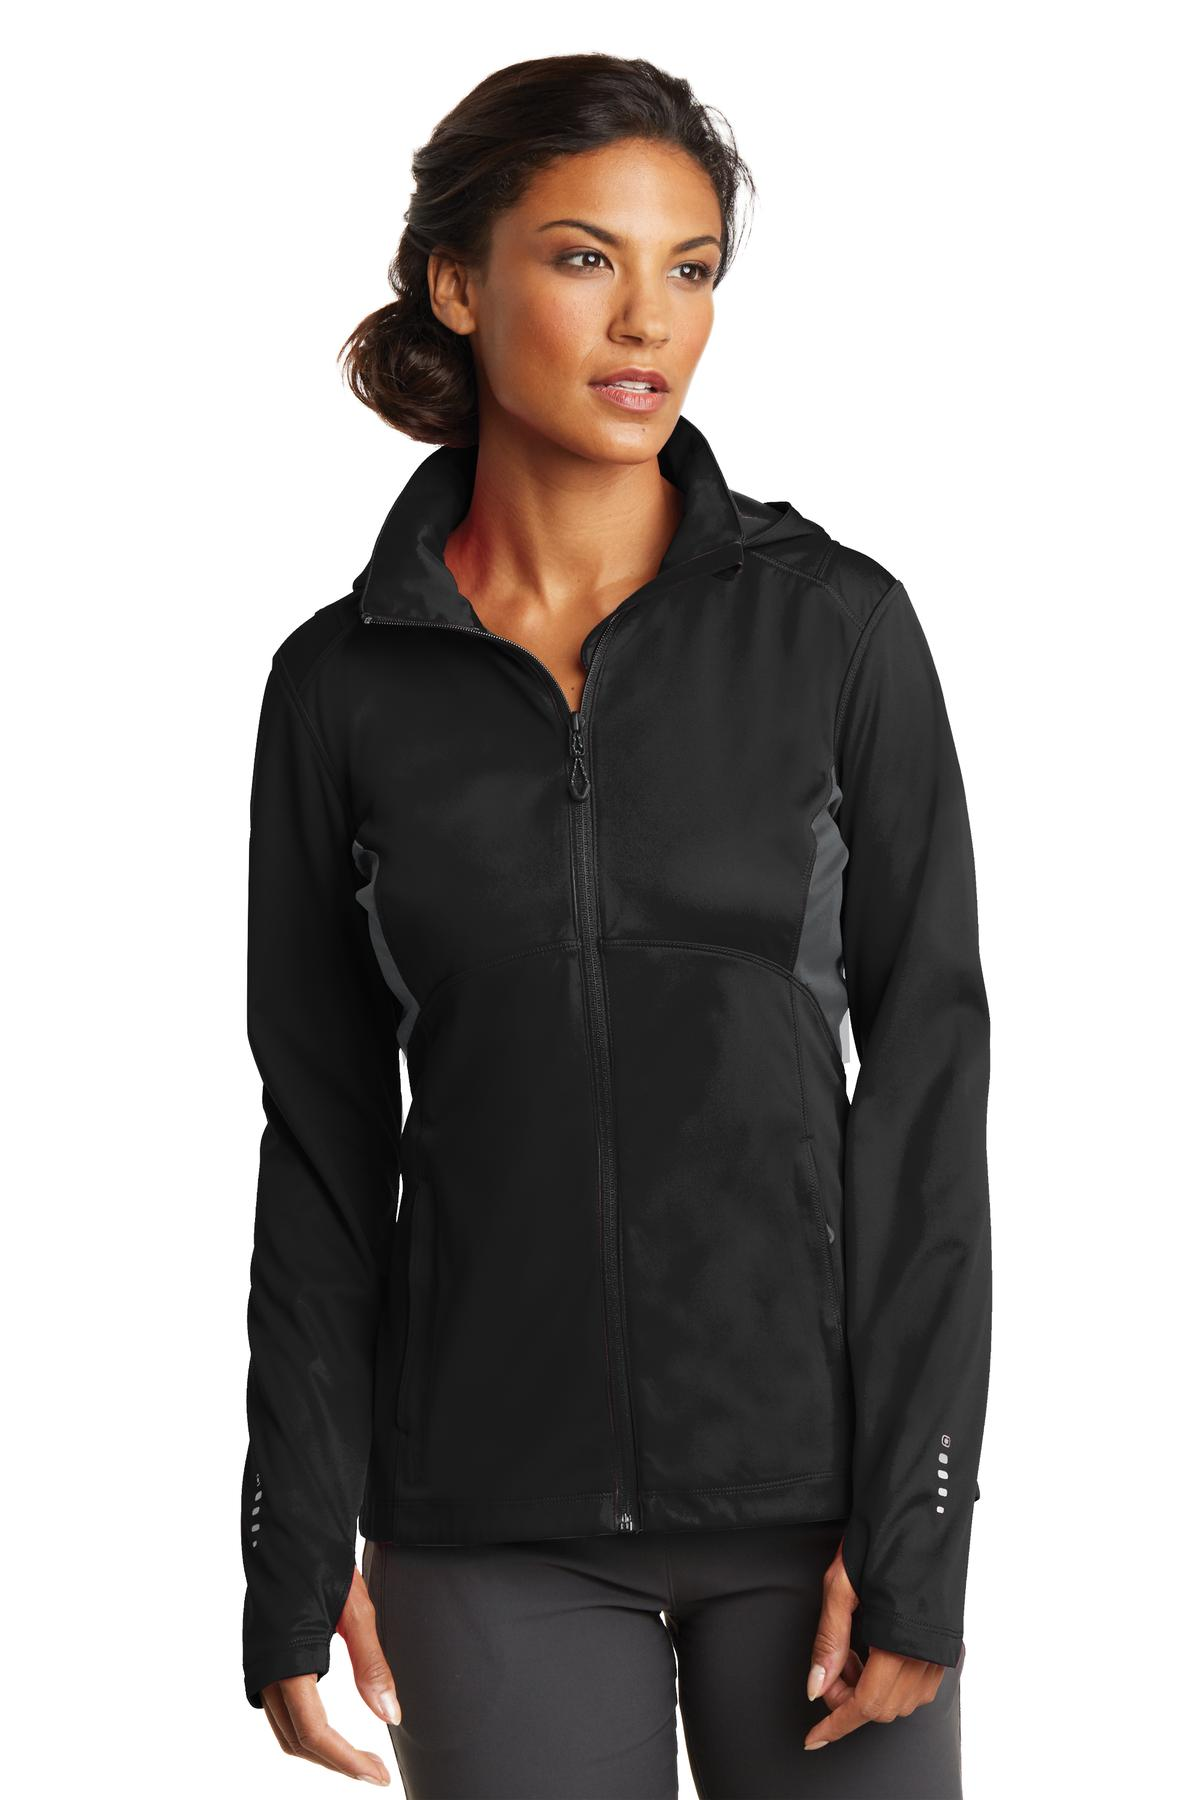 OGIO ®  ENDURANCE Ladies Pivot Soft Shell. LOE721 - Blacktop/ Gear Grey